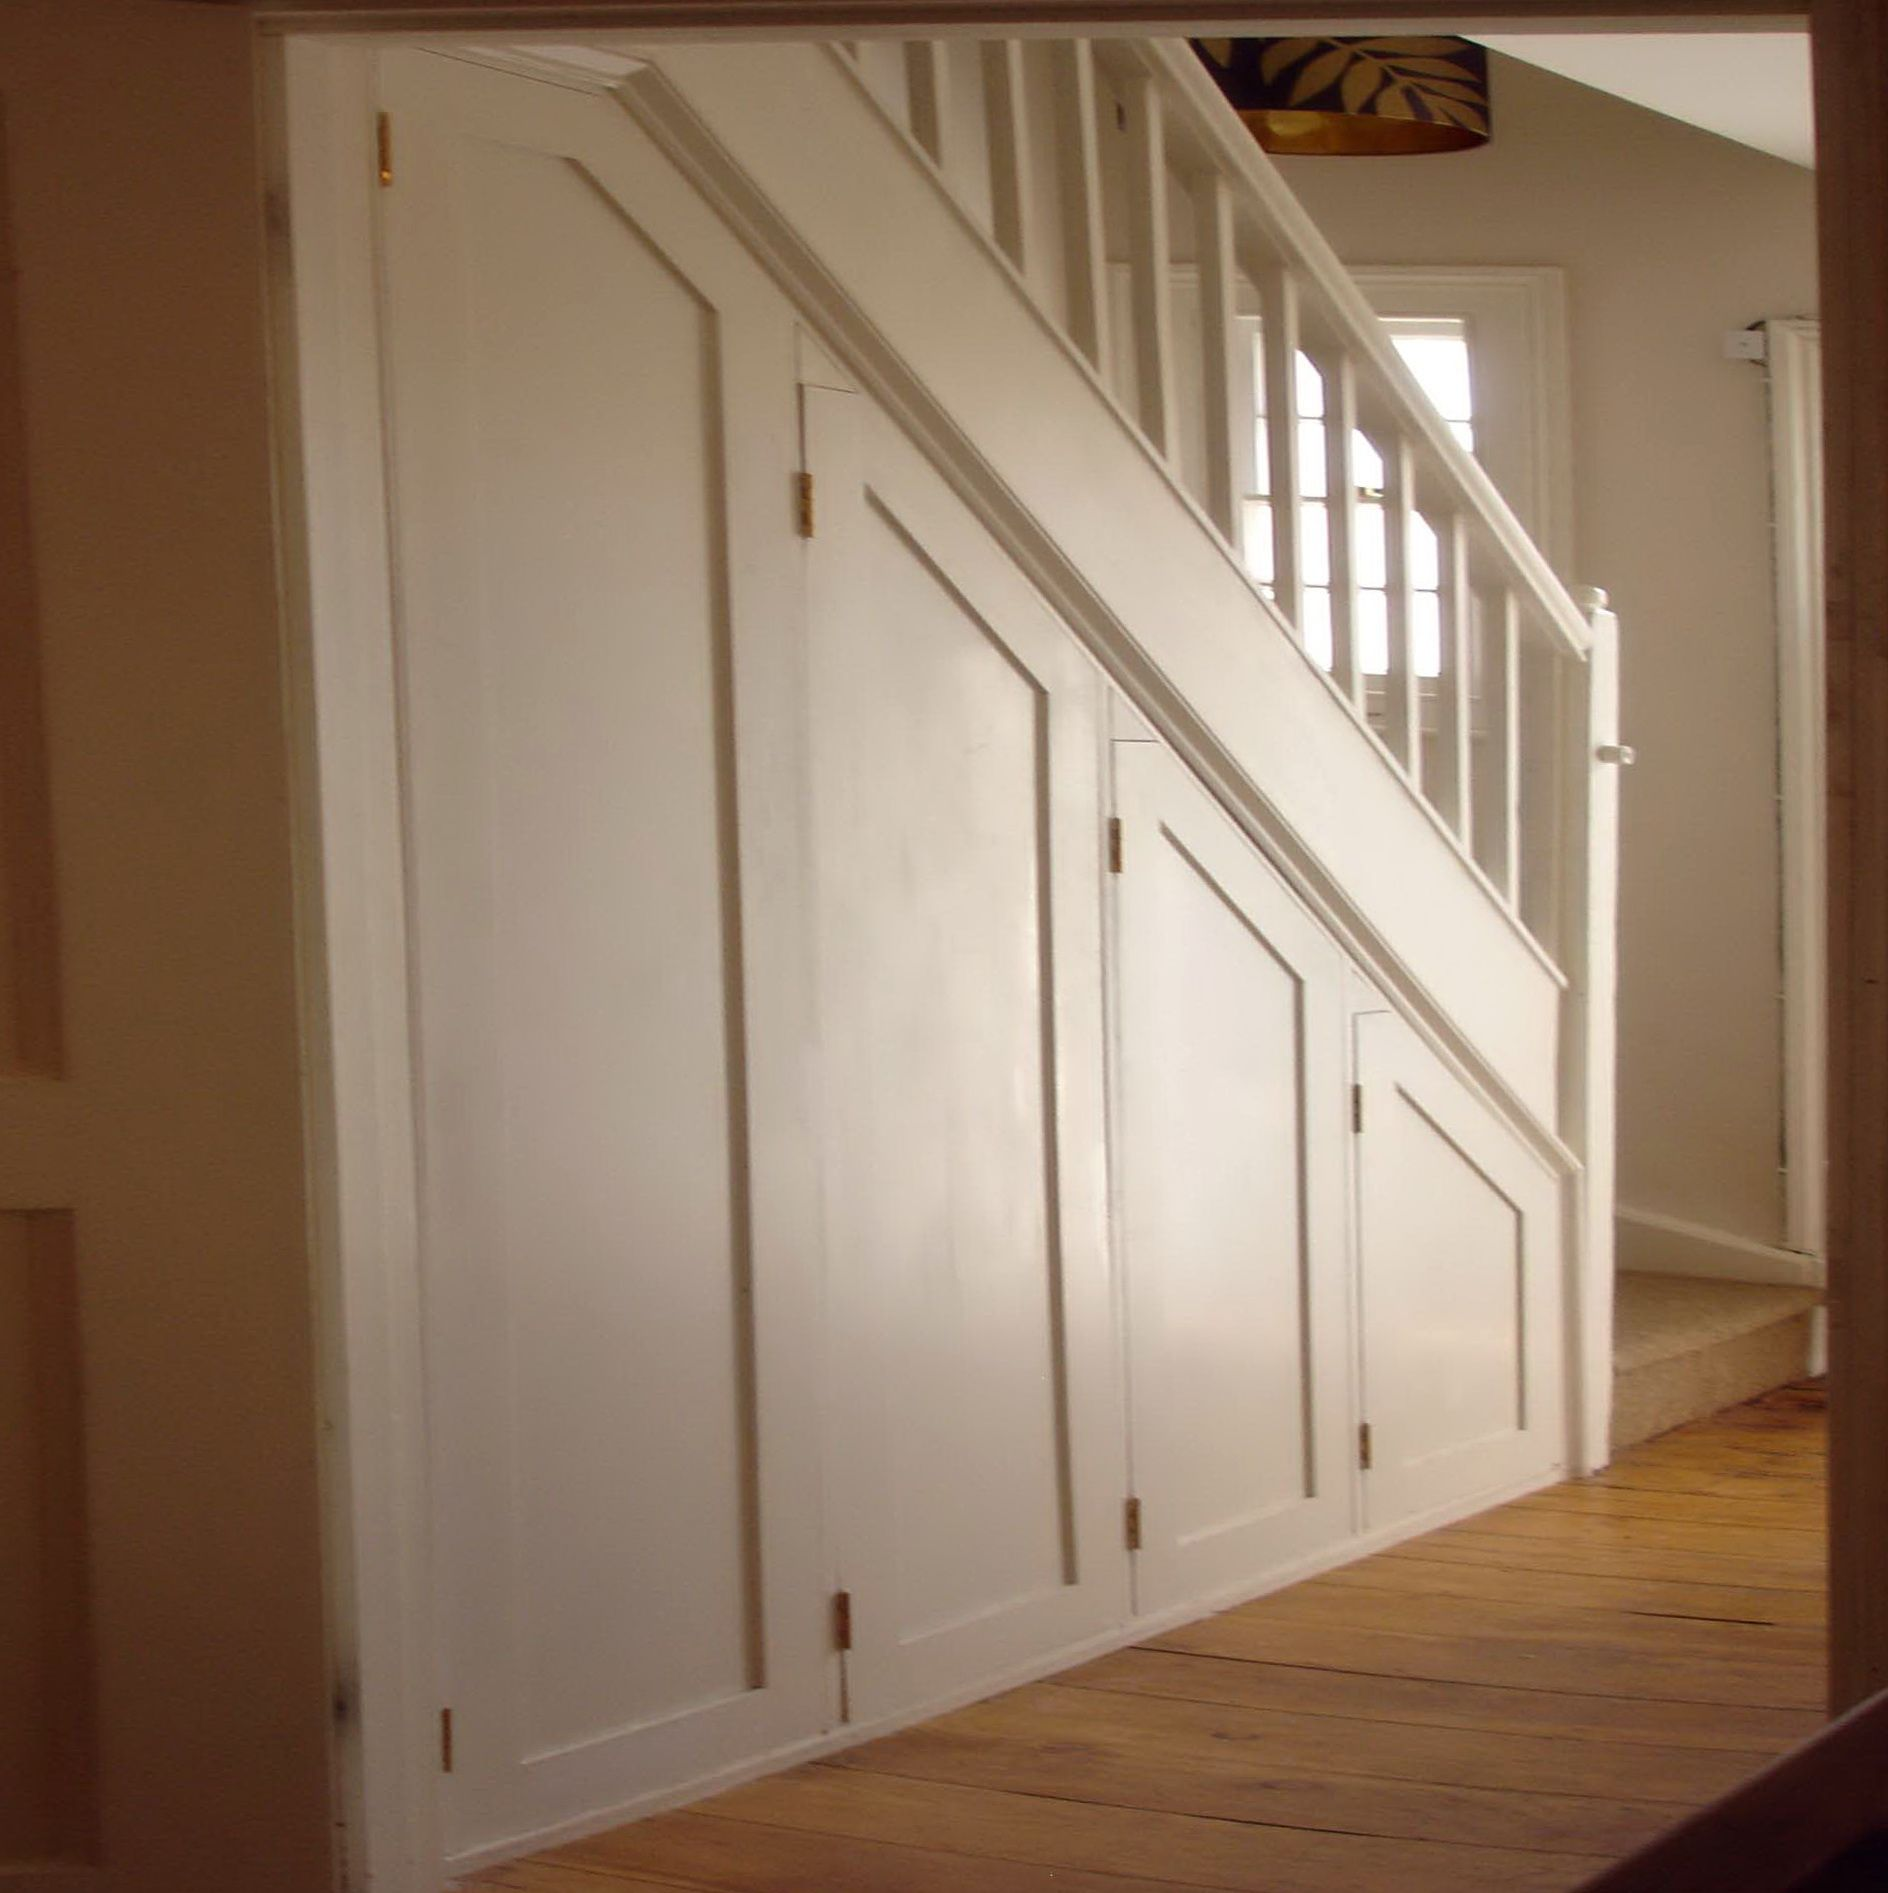 12 Storage Ideas For Under Stairs: How To Build A Closet Under A Staircase